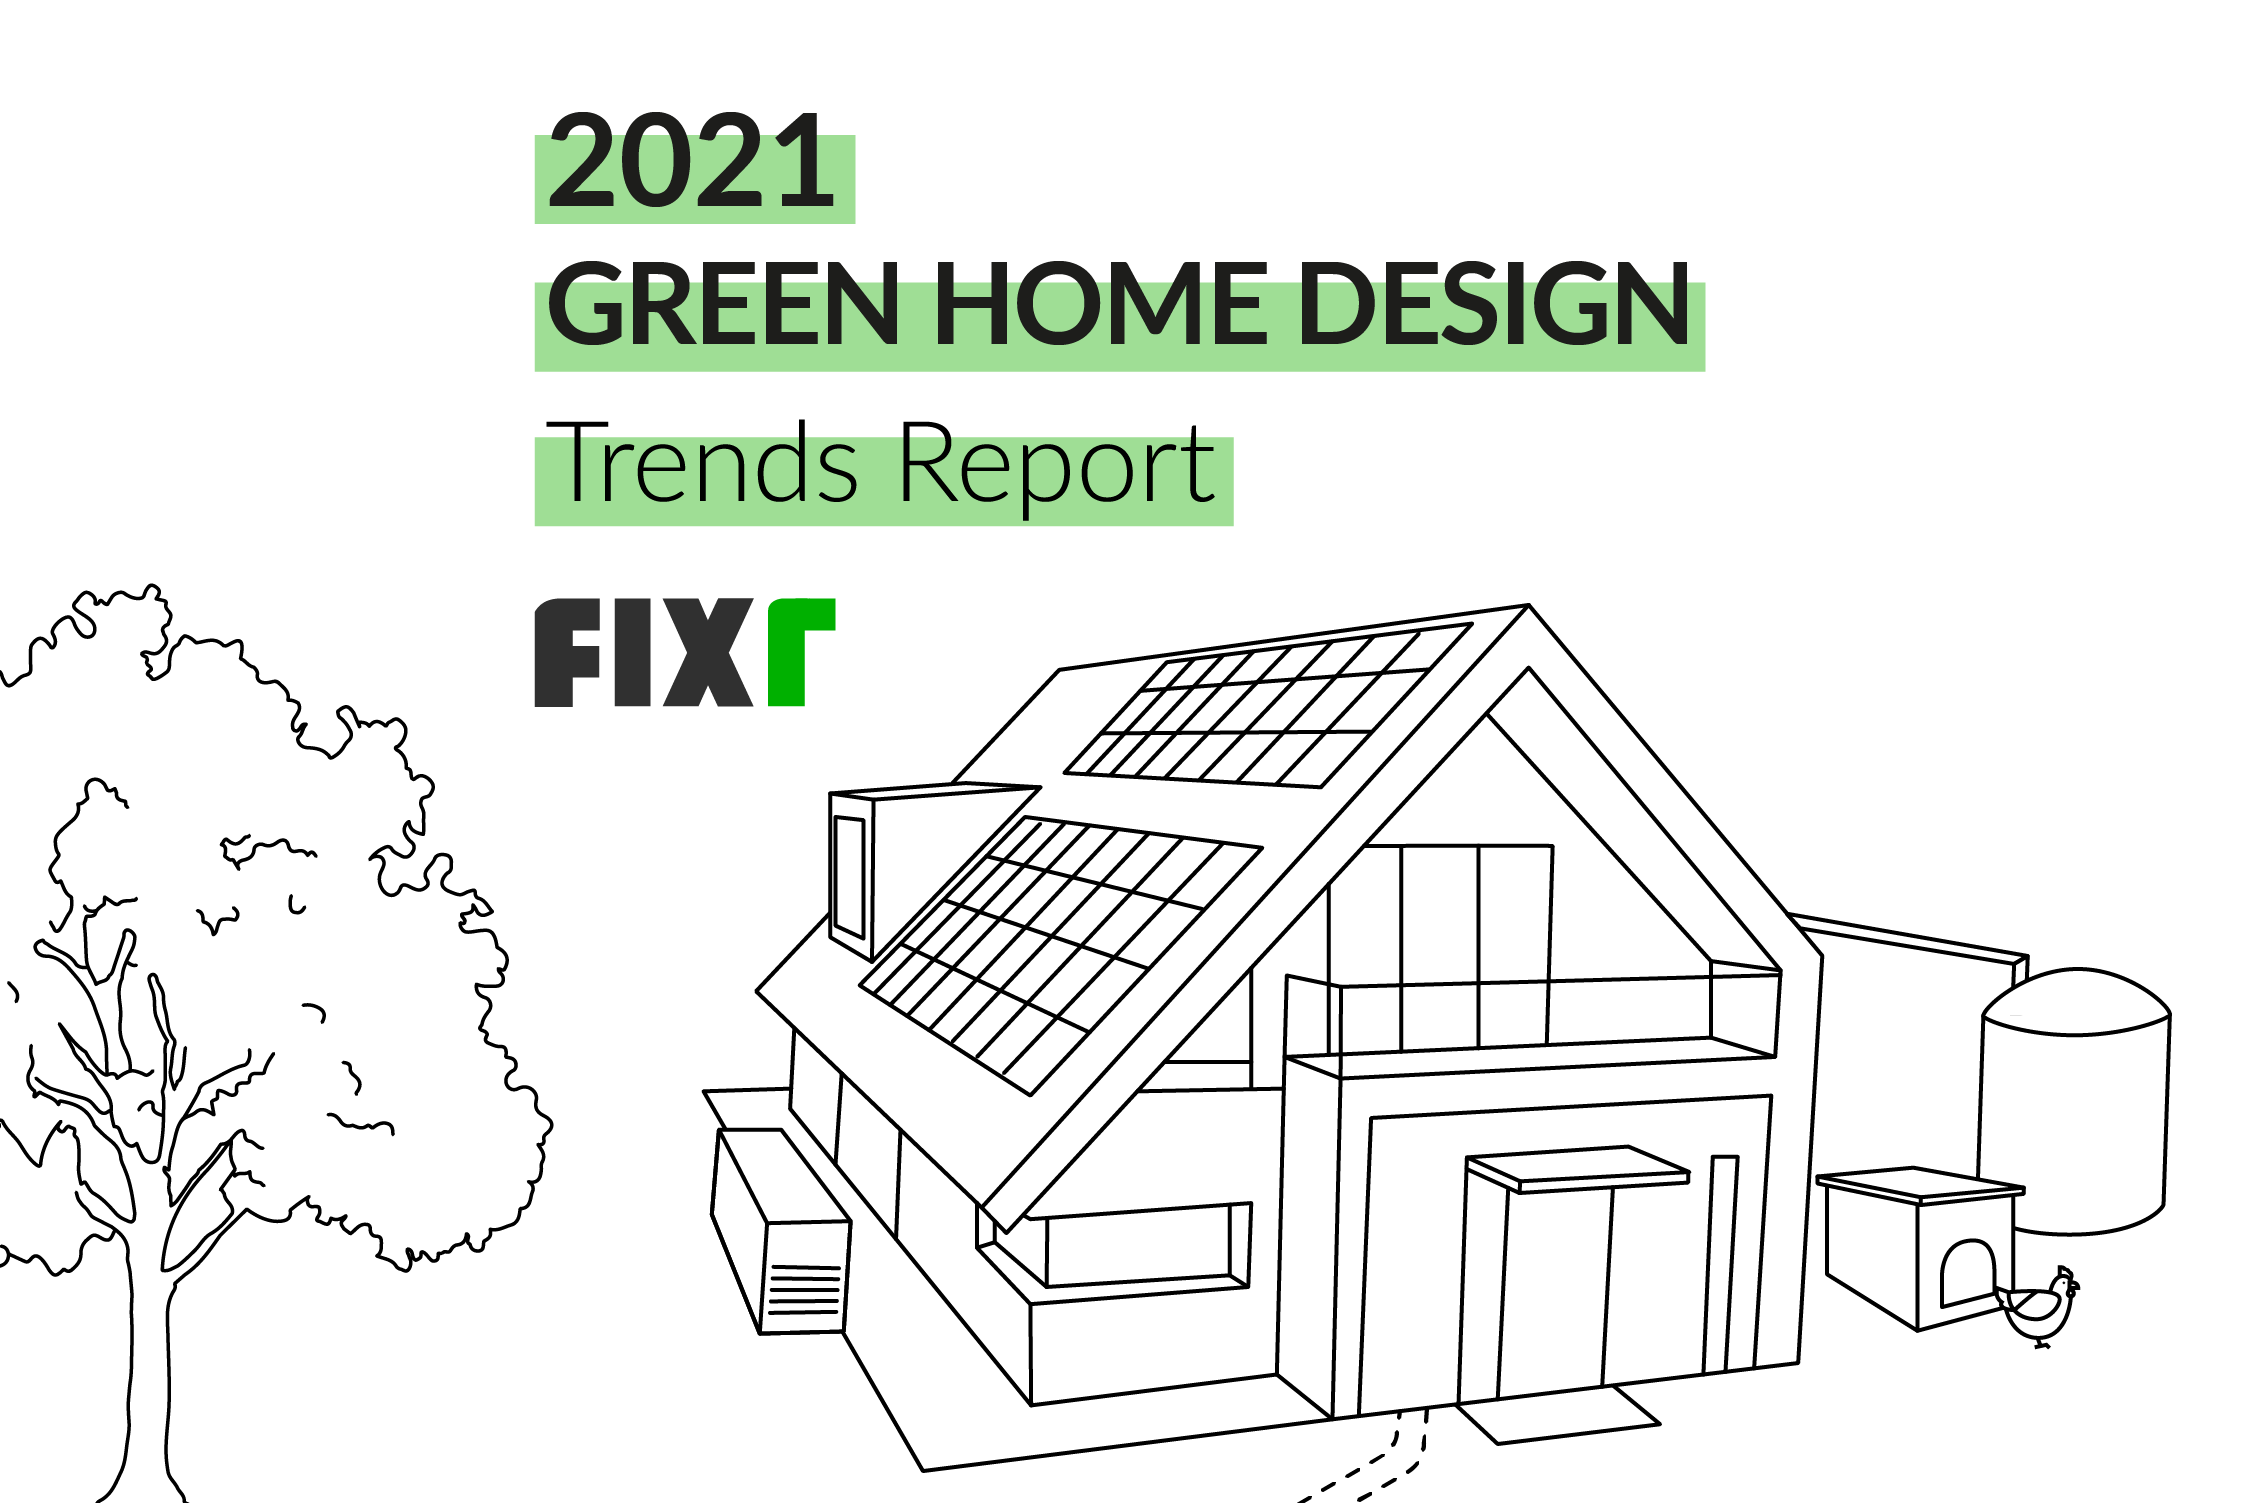 Sustainable and Green Home Design Trends in 2021